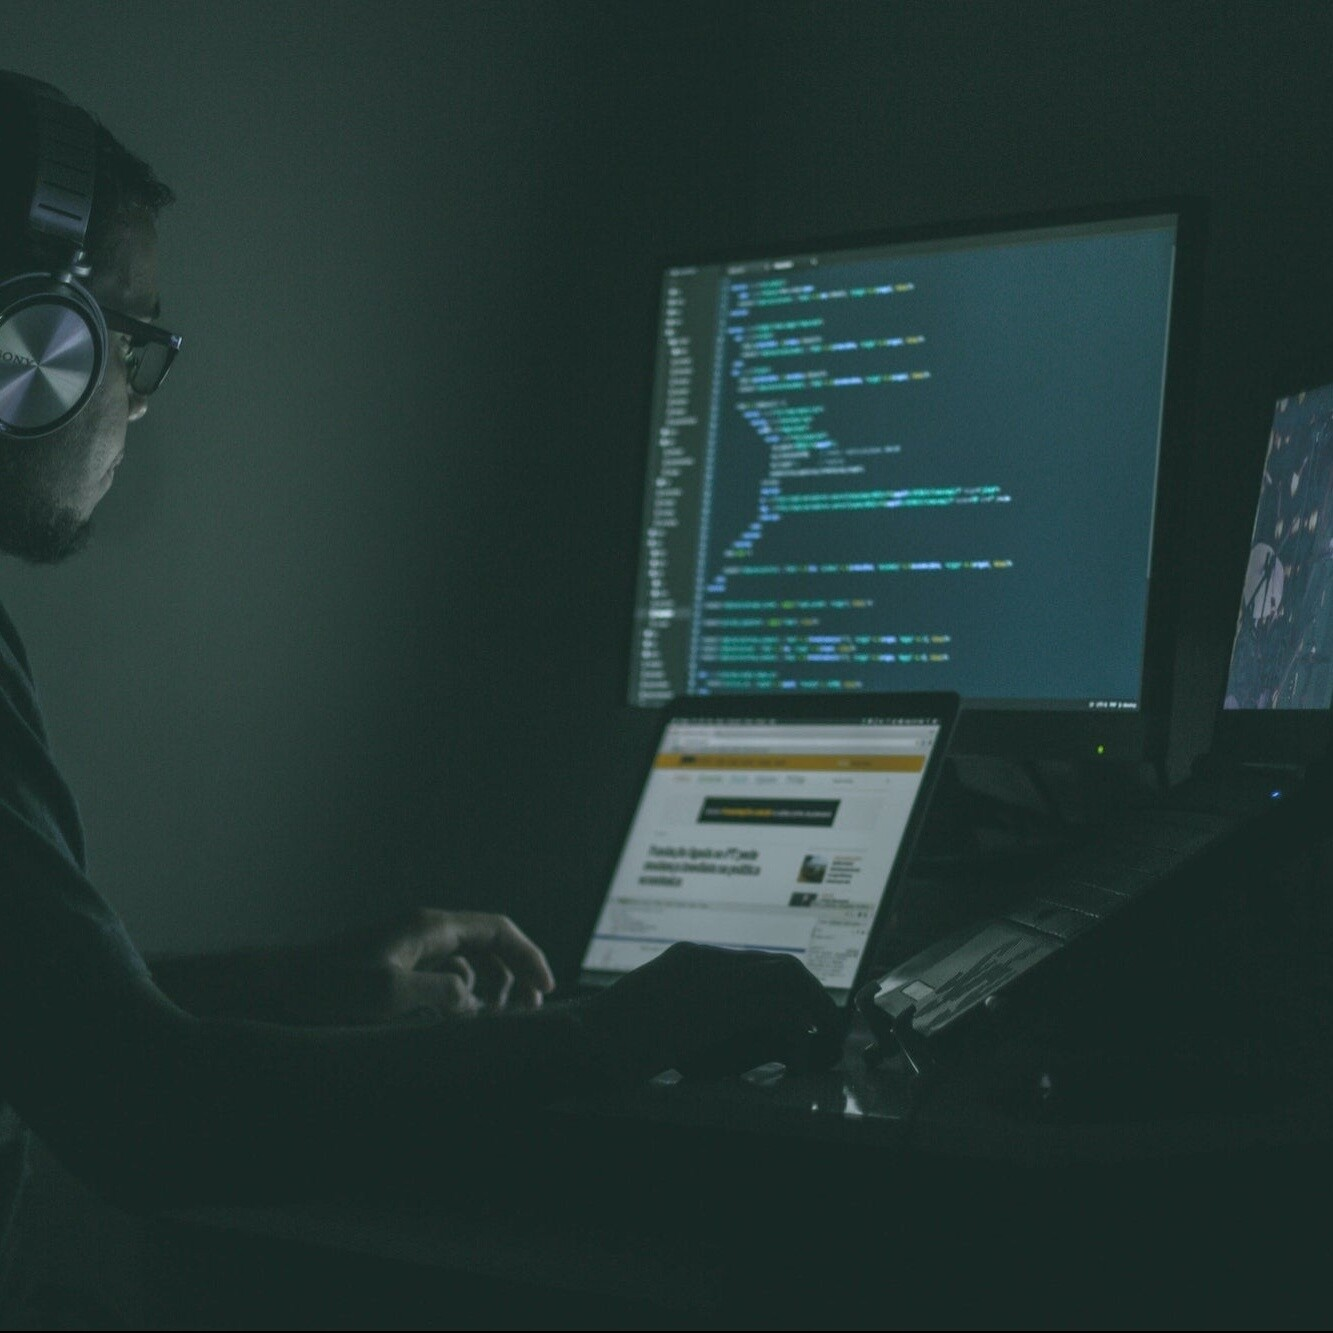 The Budget-Friendly Way to Secure Your Business Against Cybercrime